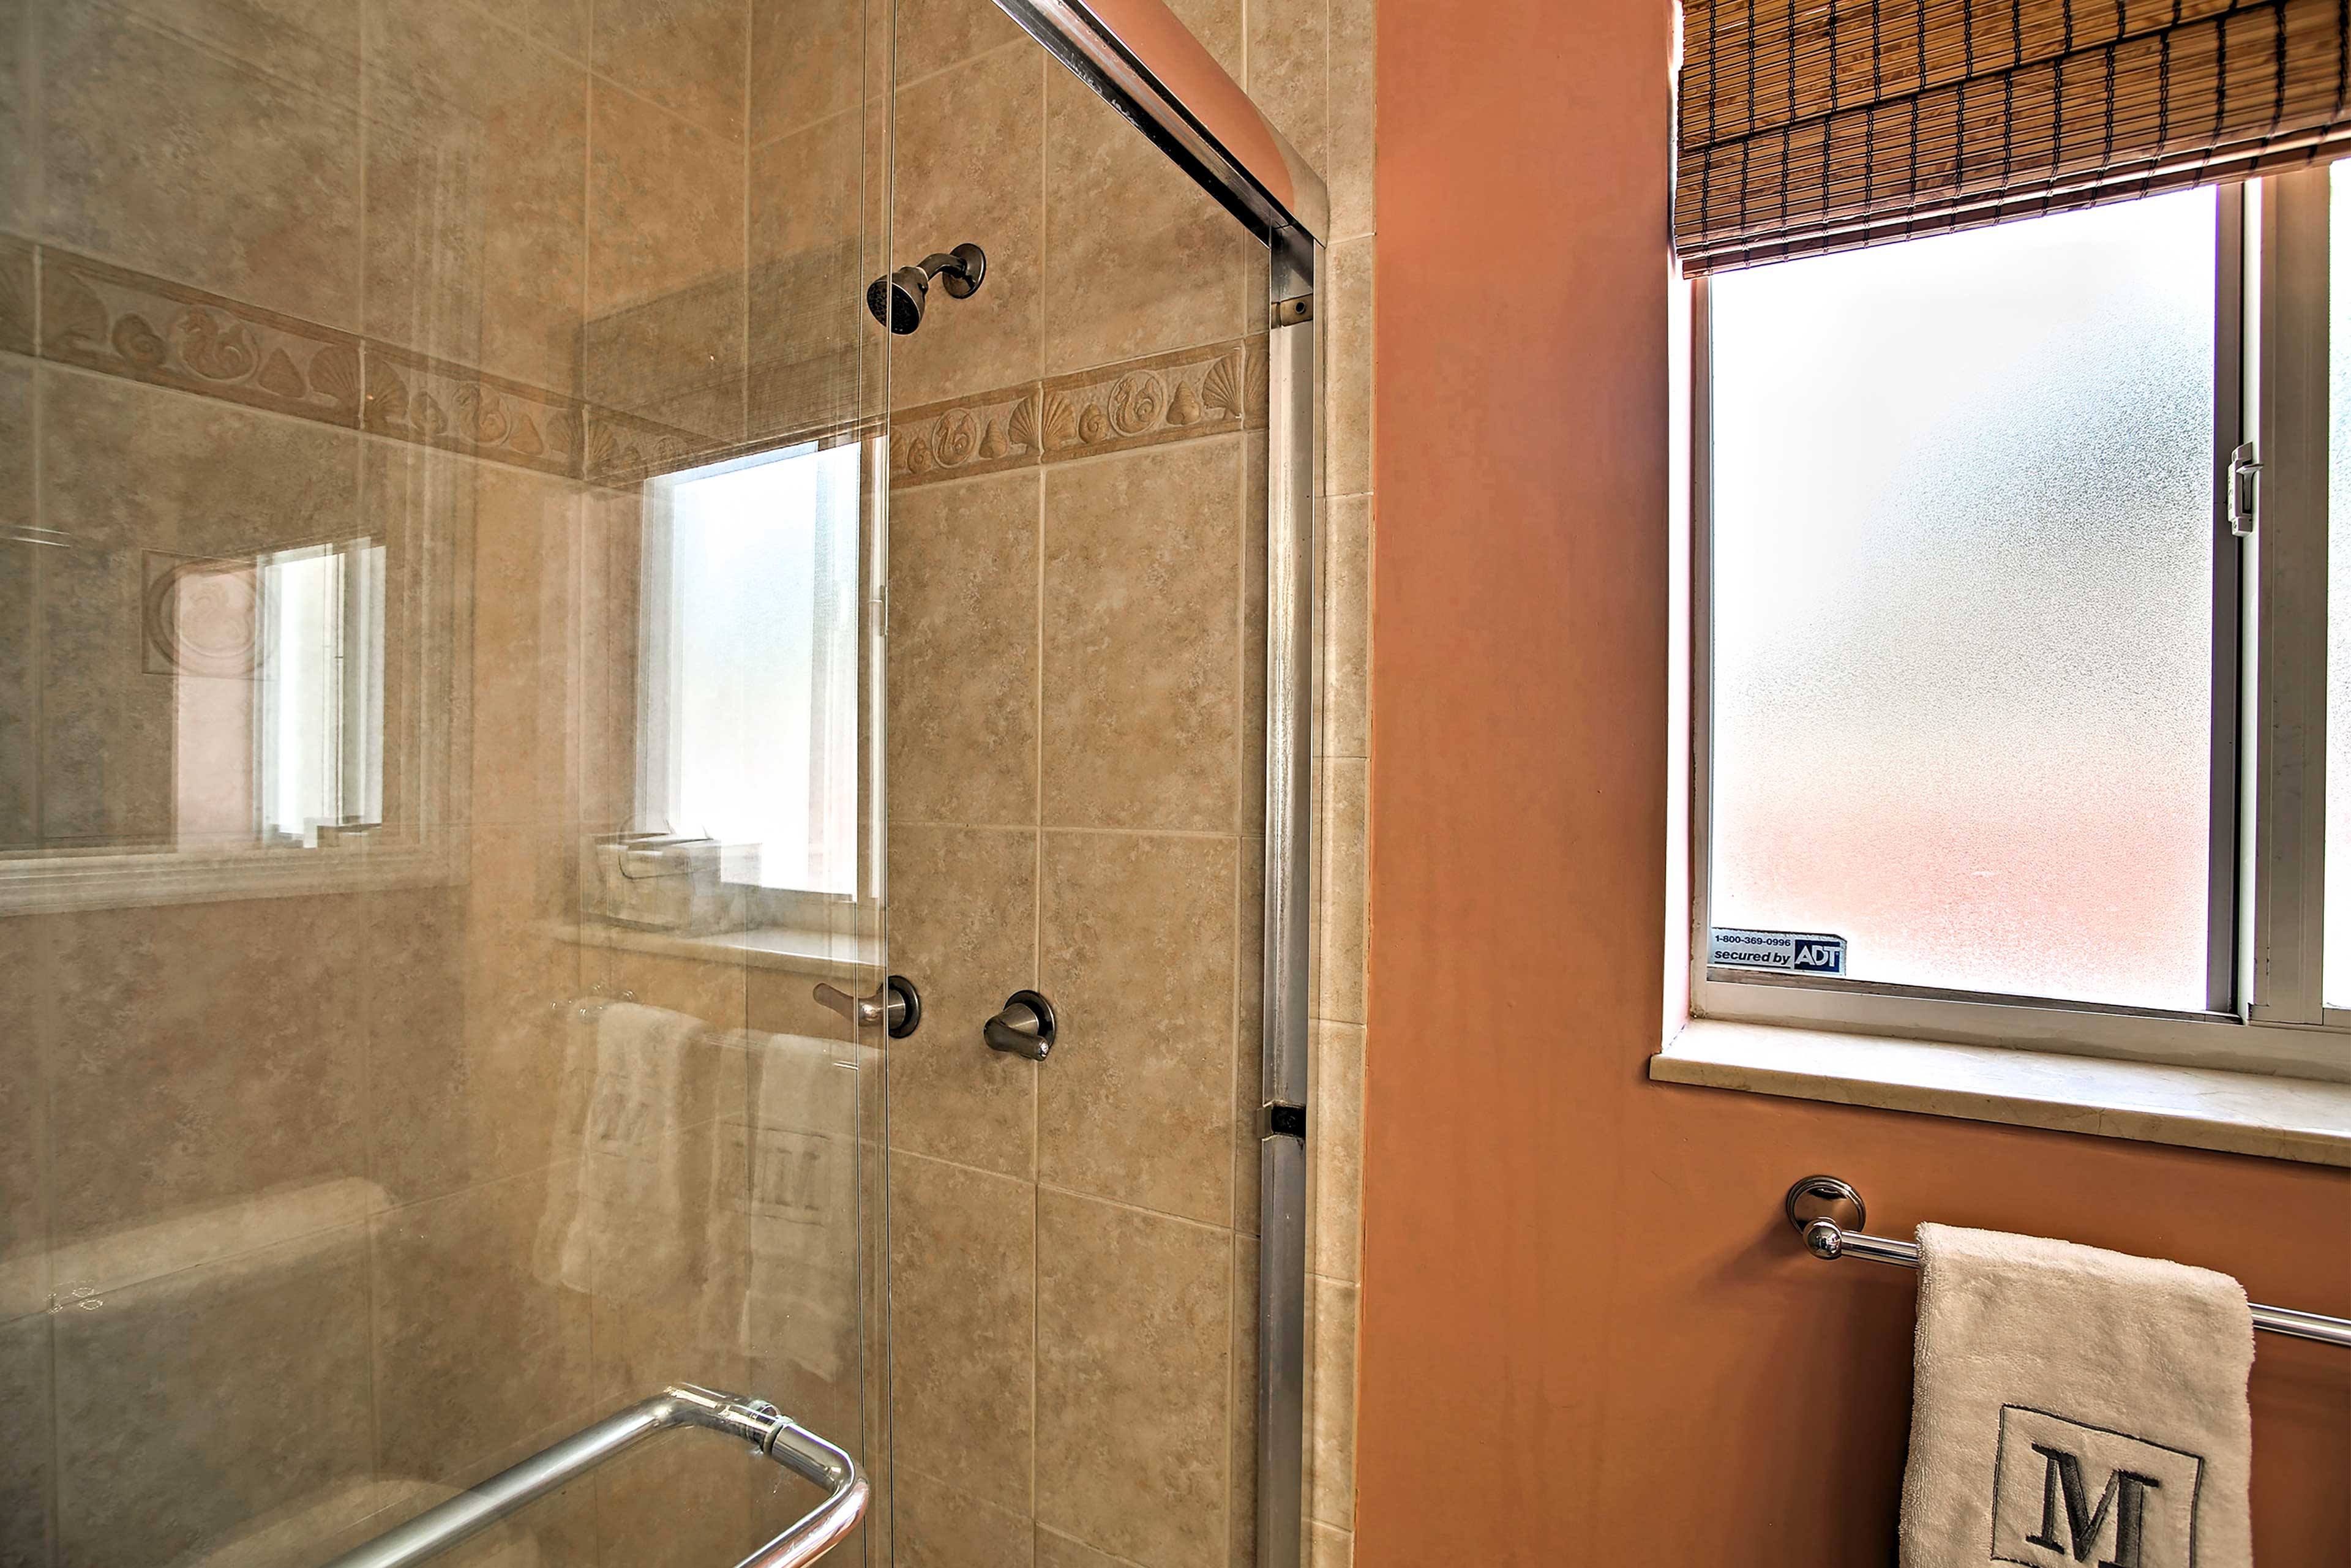 Rinse off in the large glass shower.